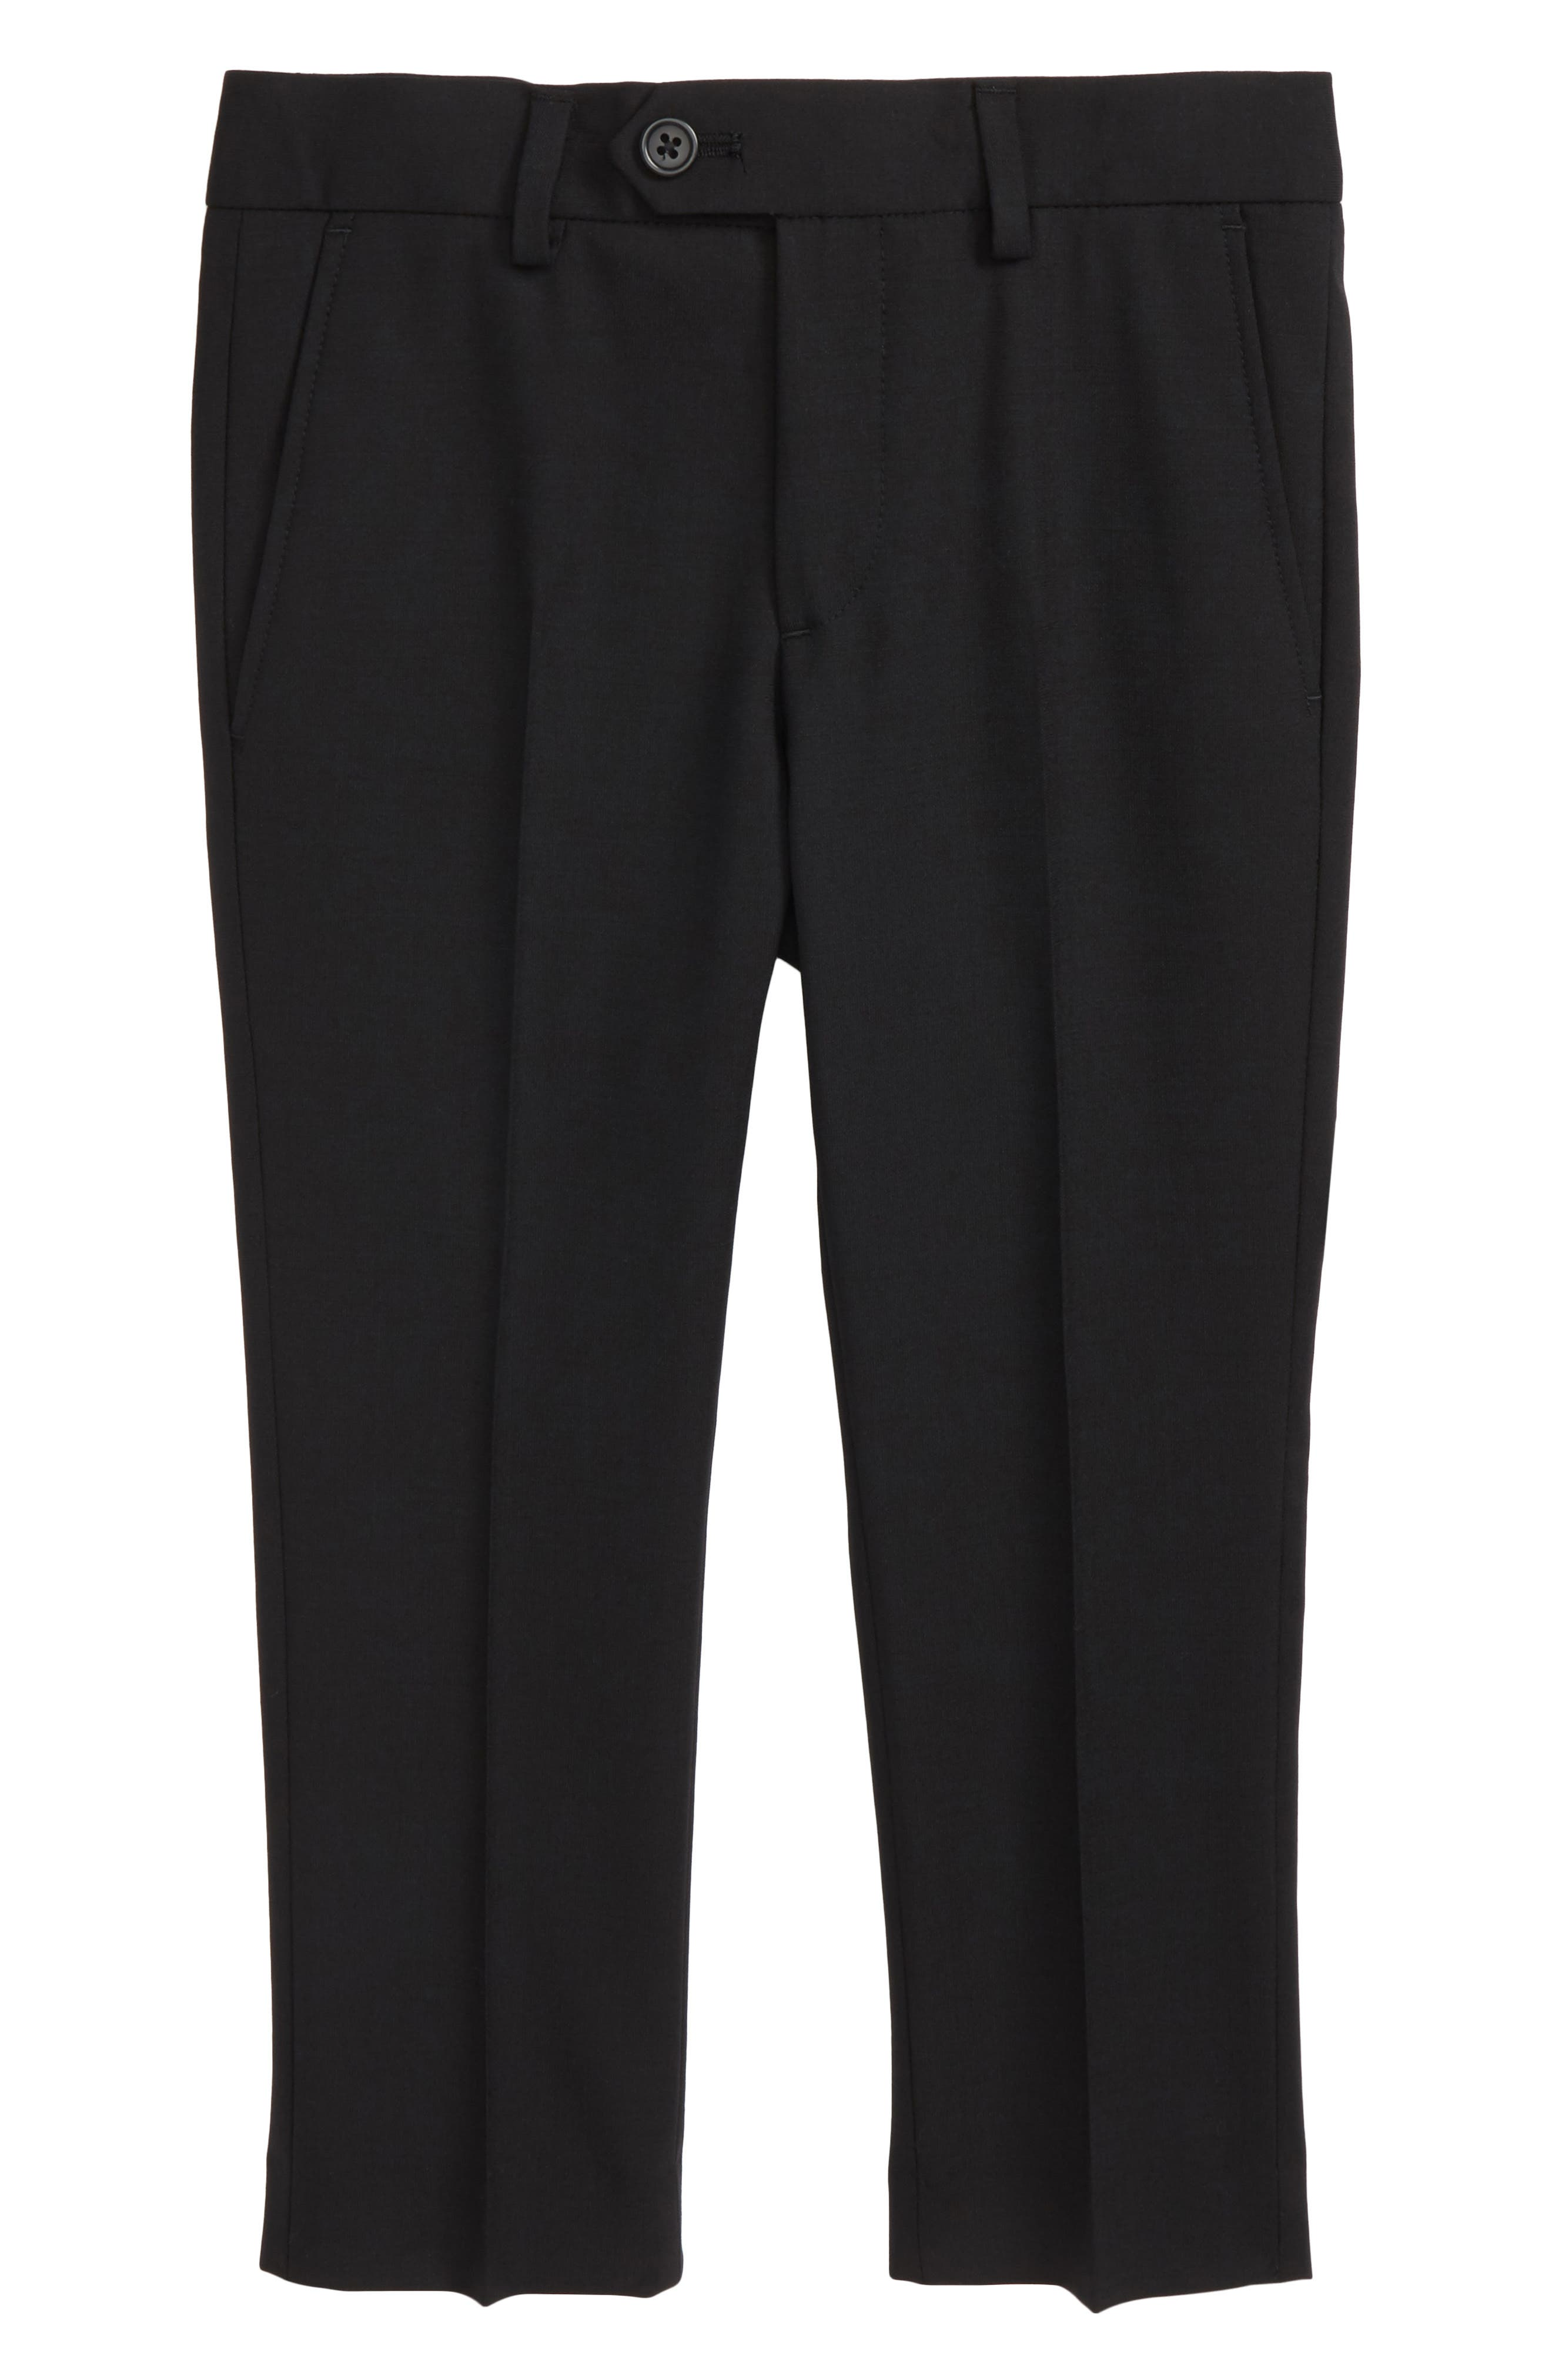 Tallia Solid Wool Blend Flat Front Trousers (Big Boys)